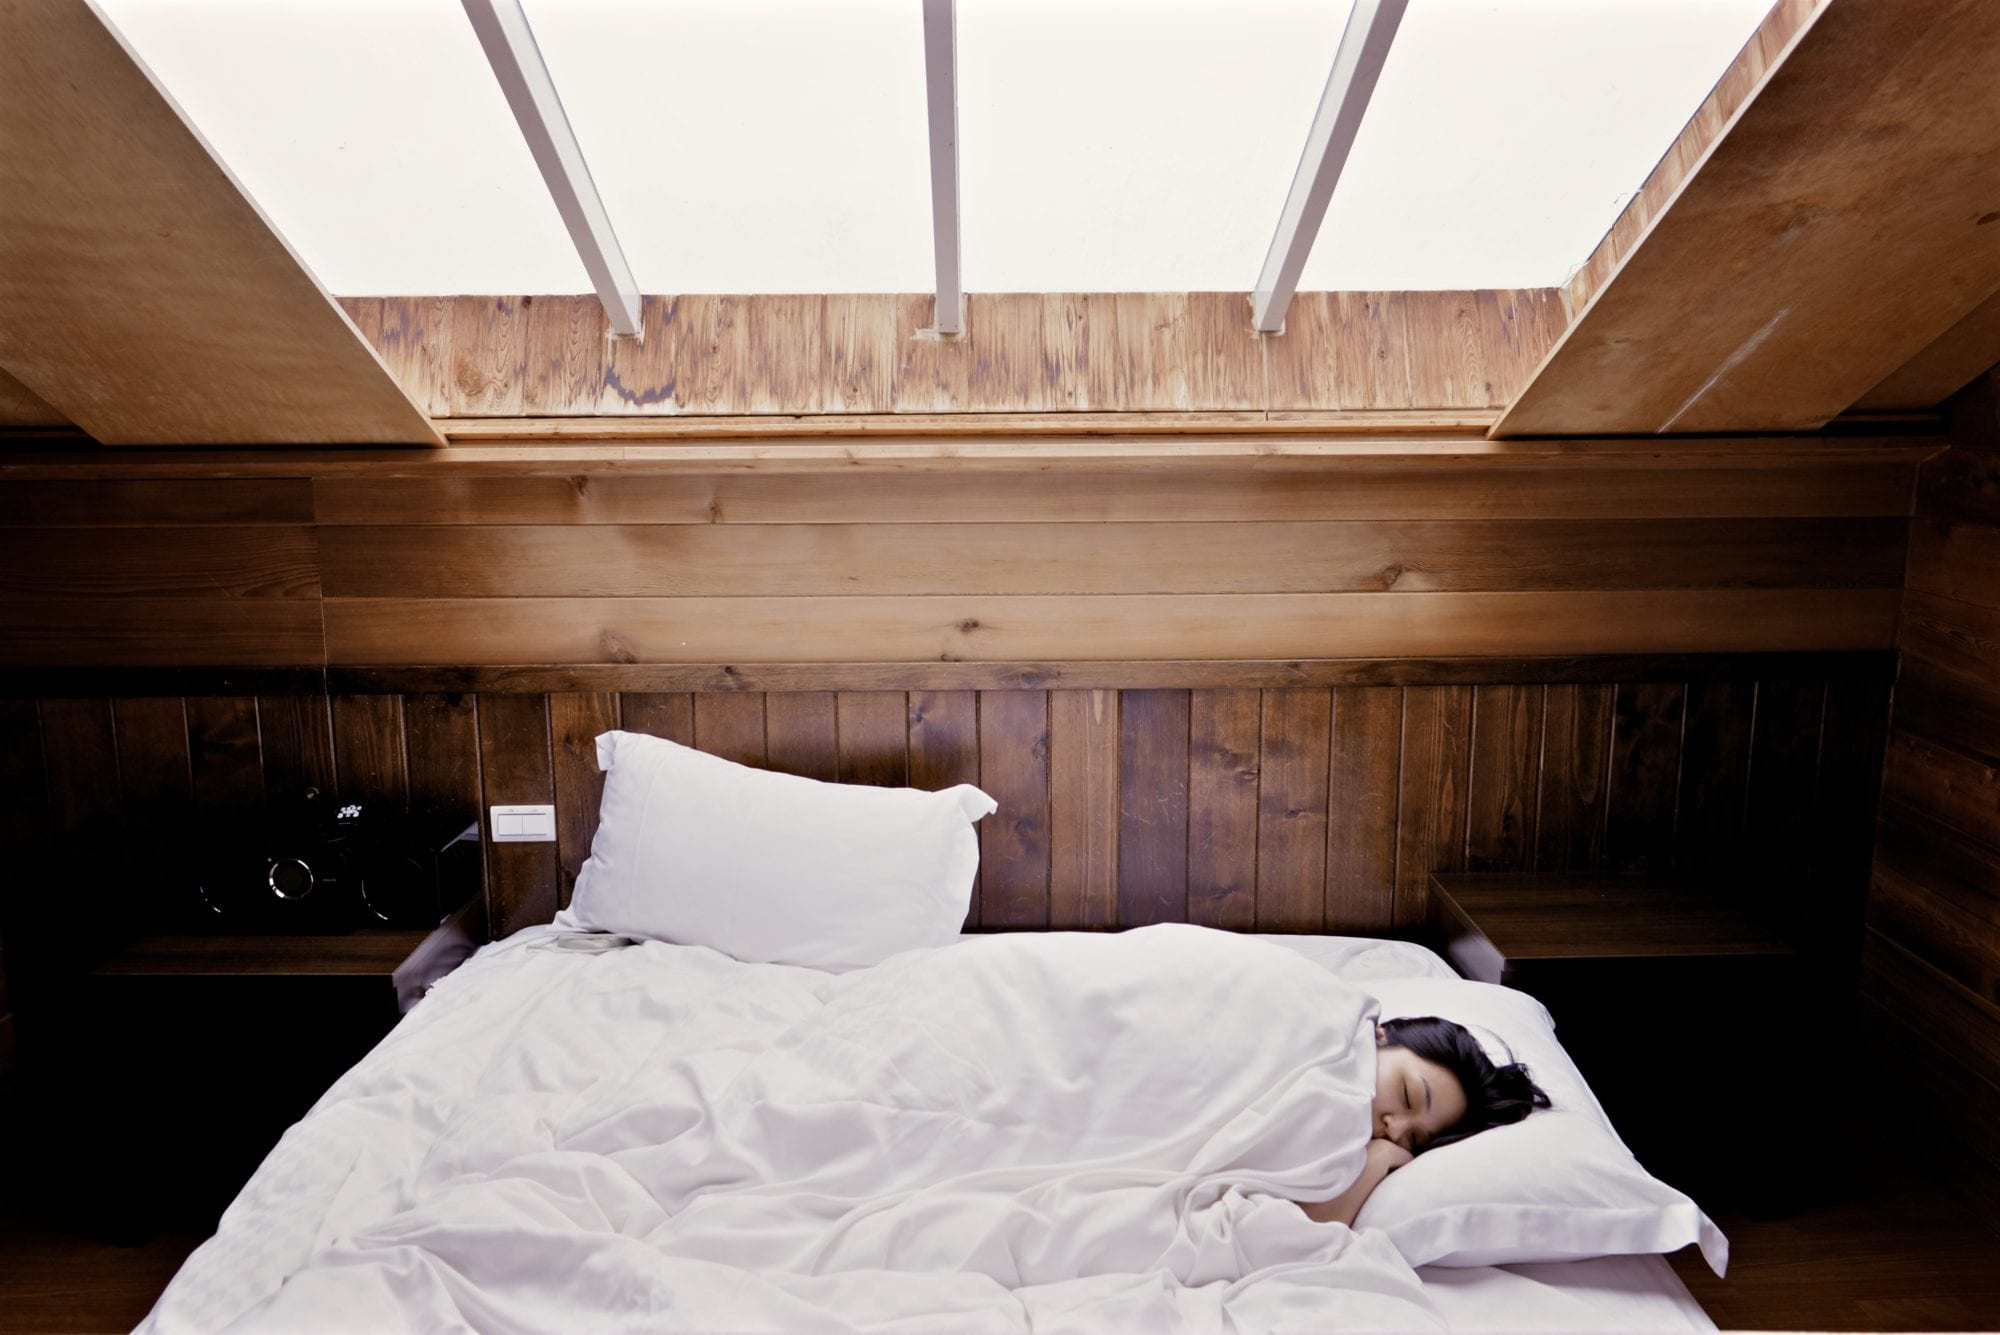 woman in bed under skylight